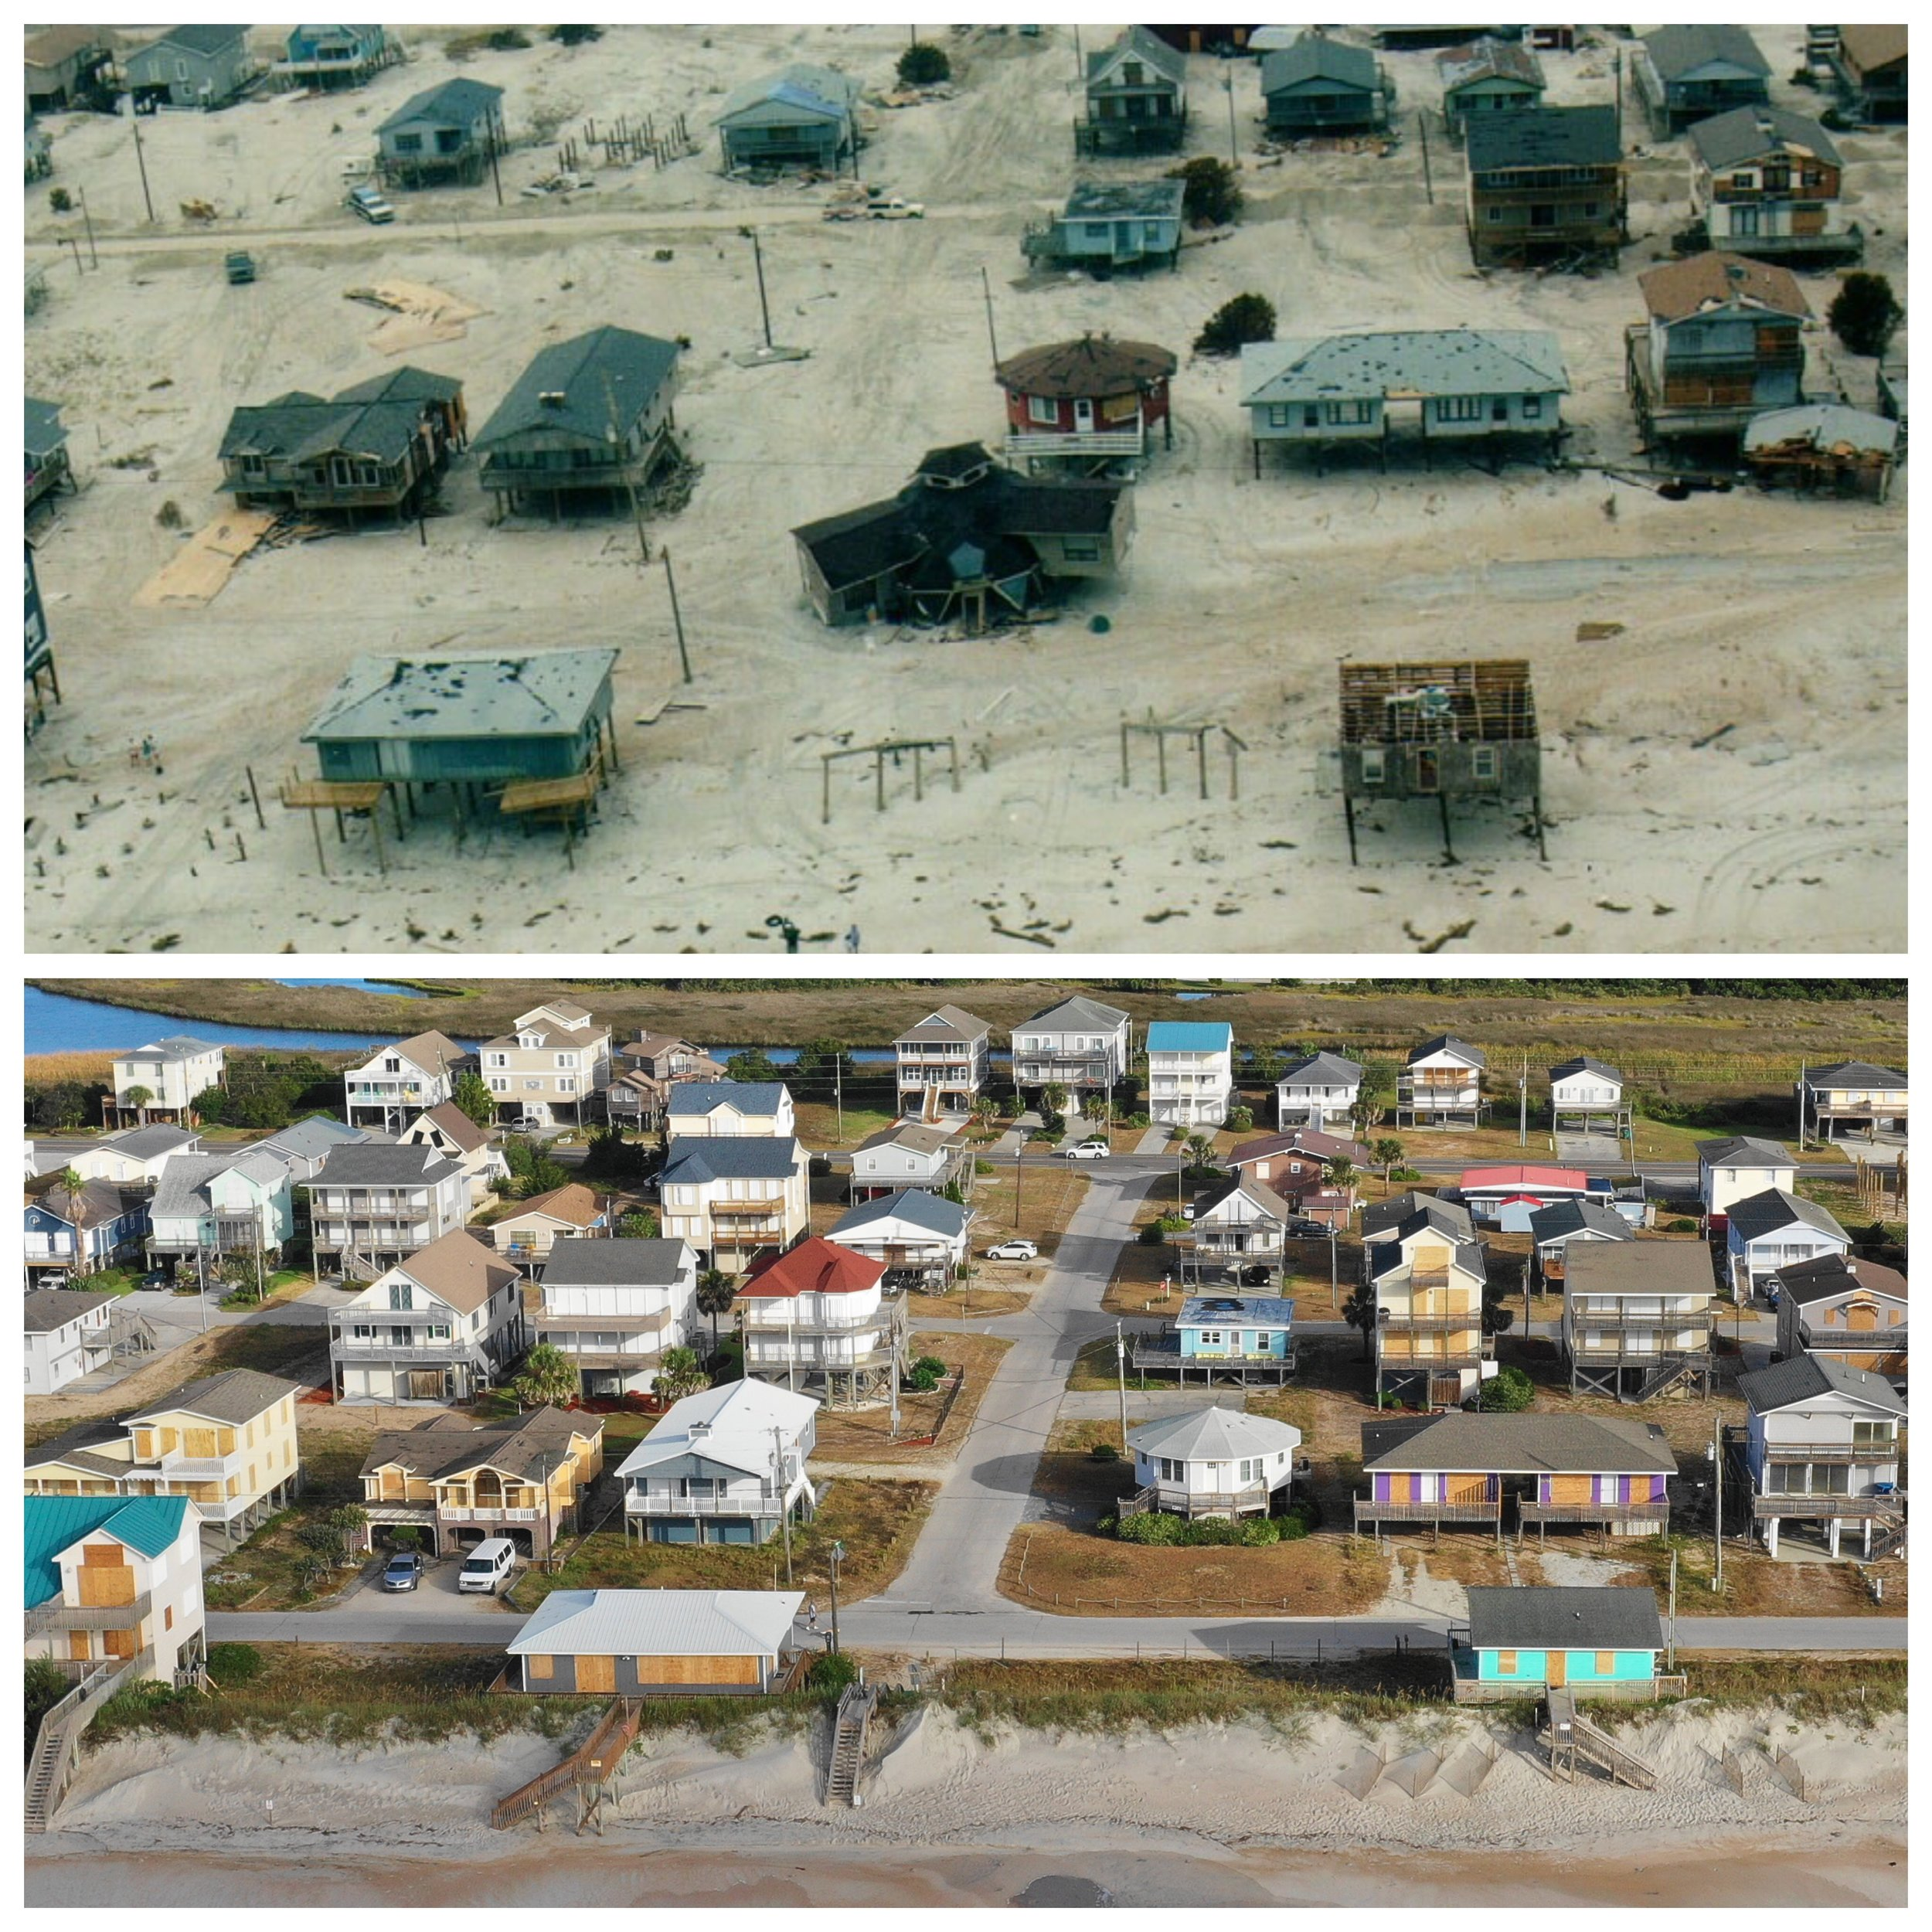 Hurricane Fran (1996)/Hurricane Florence - 1300 North Shore Dr, Surf City, NC